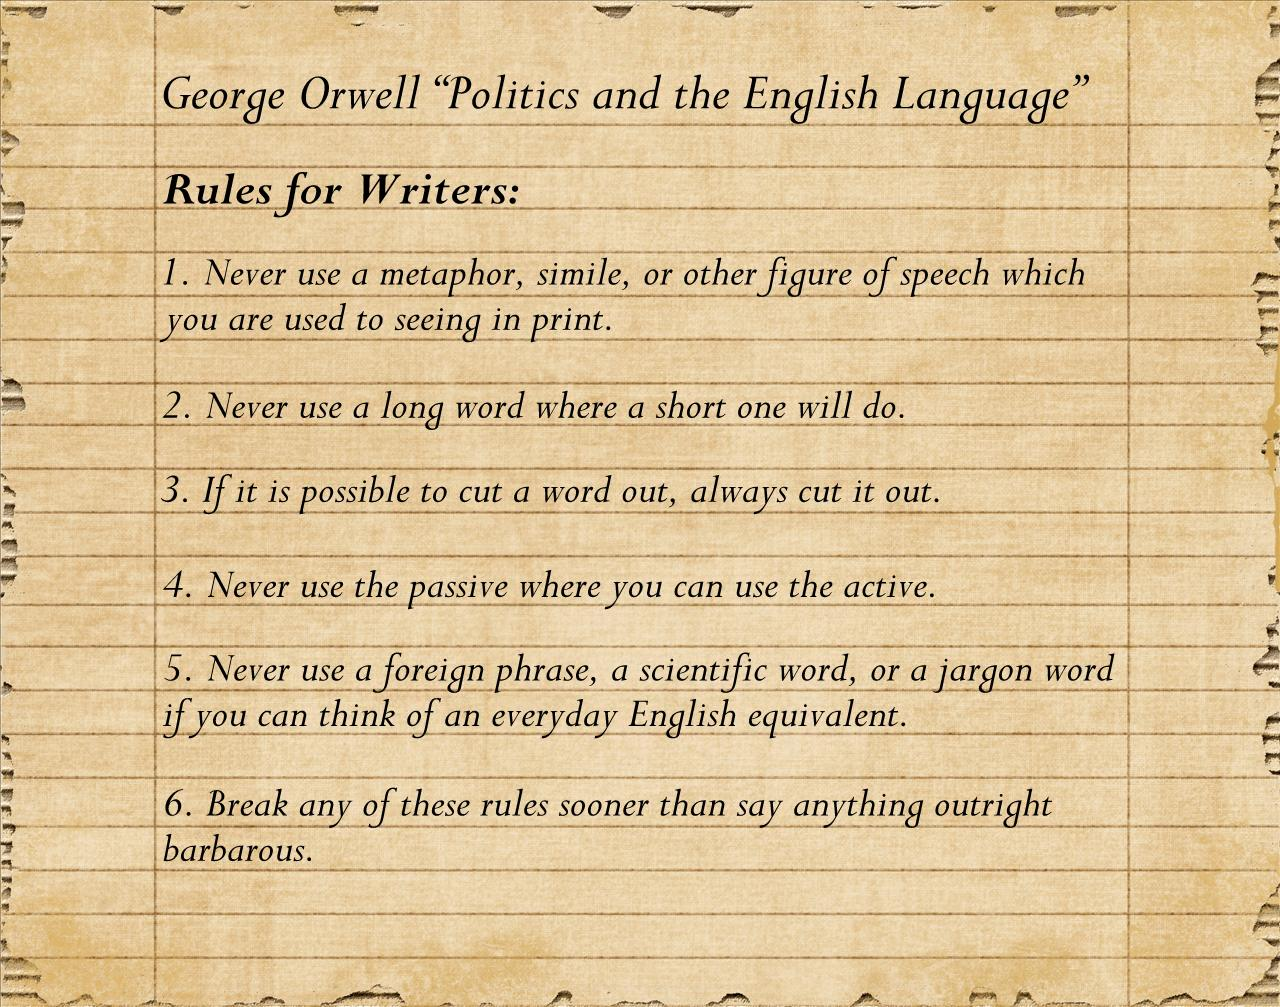 basic rules for writing an essay Good essay writing is a skill acquired rather than learnt approaches vary from person to person and will depend on one's experience in essay writing, almost to the point where a style of writing will be as individual as a signature you may already be quite comfortable writing essays and if so, you will have a definite feel for.